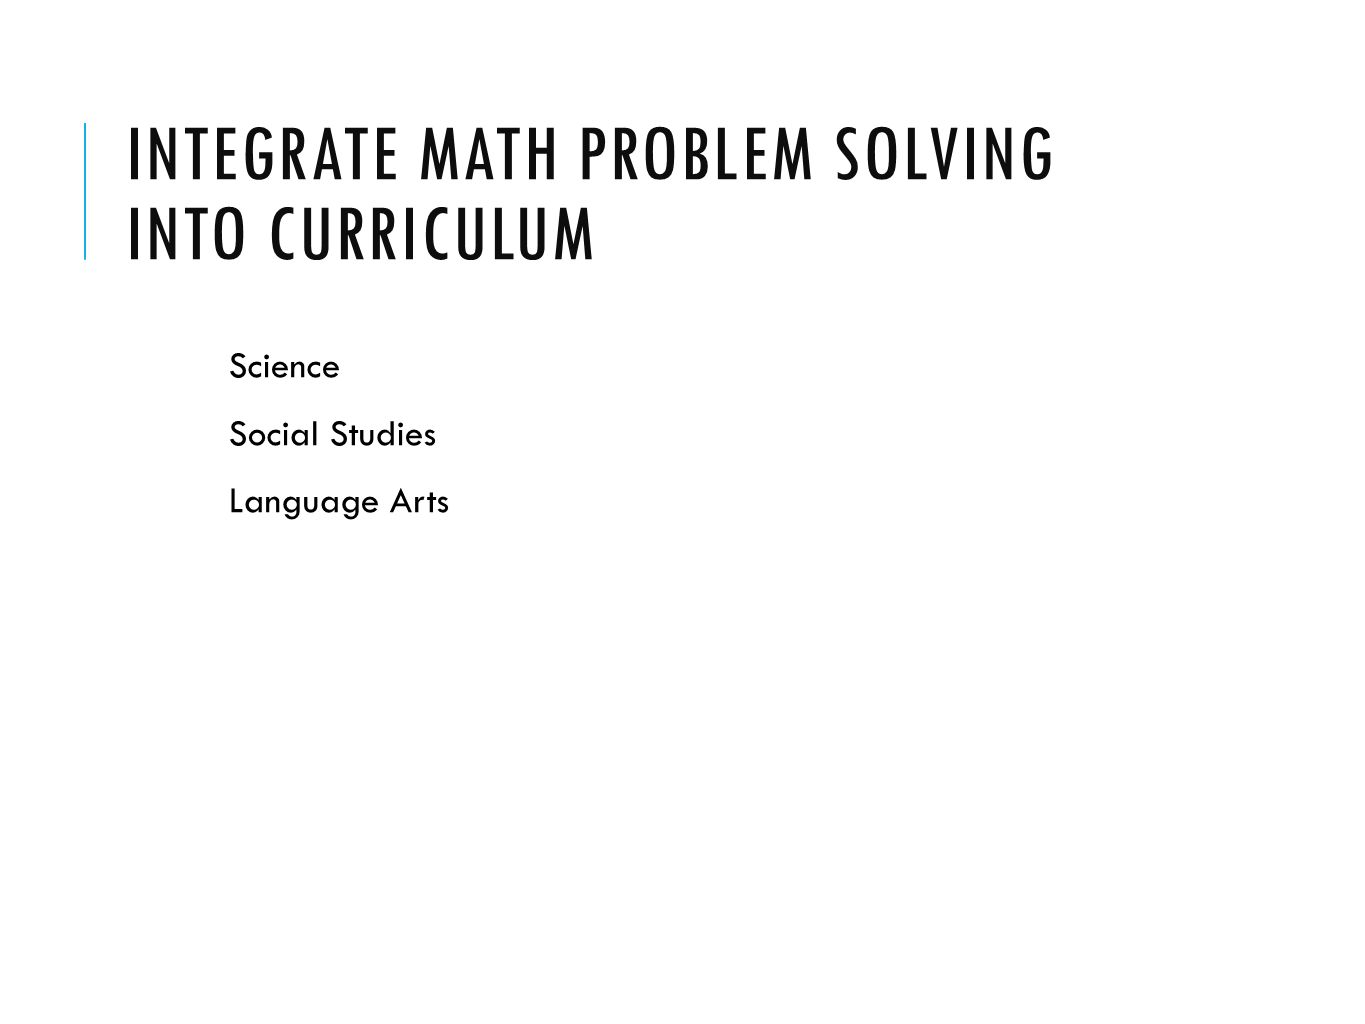 INTEGRATE MATH PROBLEM SOLVING INTO CURRICULUM Science Social Studies Language Arts